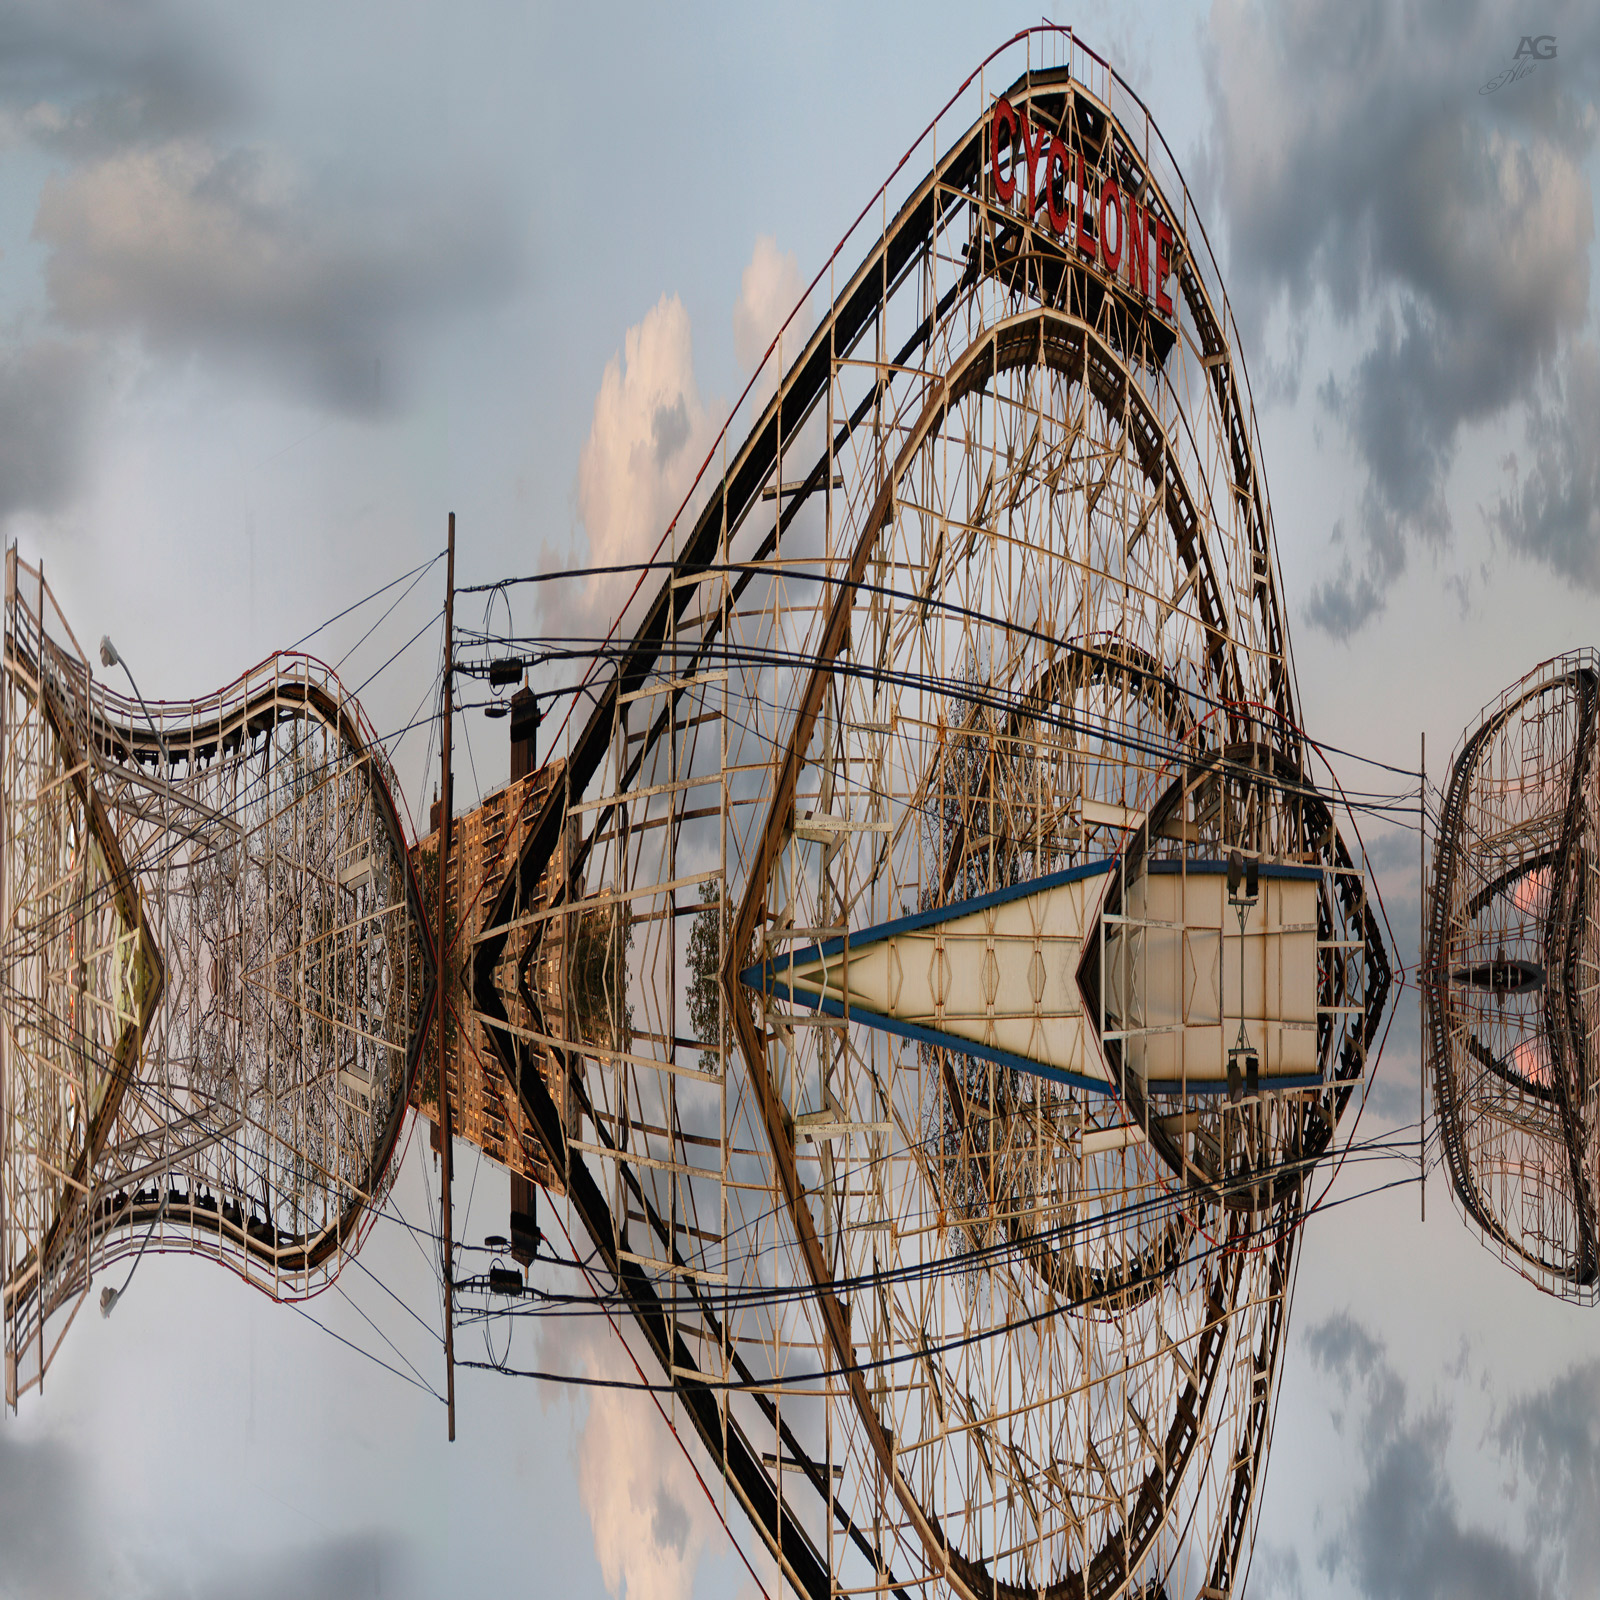 CycloneConeyIslandClose-UpClouds_REFLECTED_8500_squished_1600